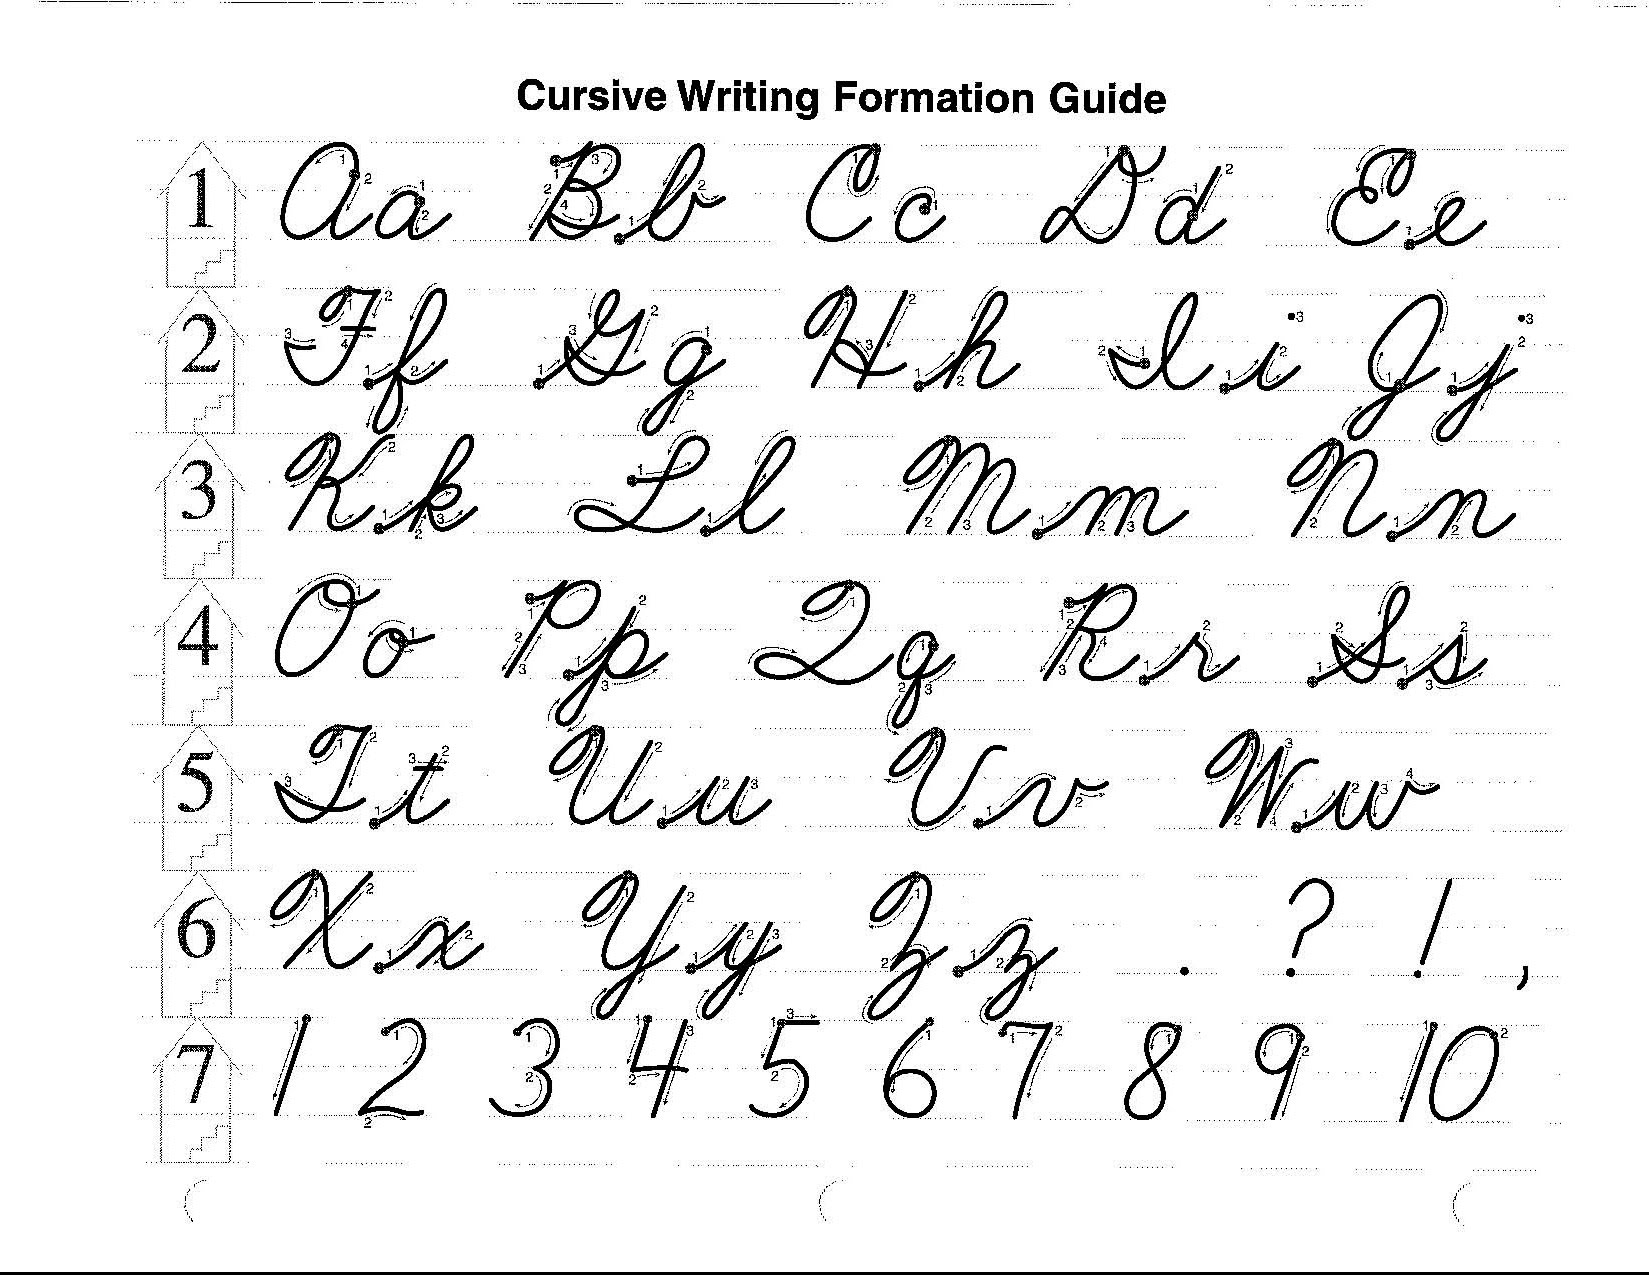 Worksheet Alphabet Cursive Writing cursive writing alphabet islamichomeeducation alphabet